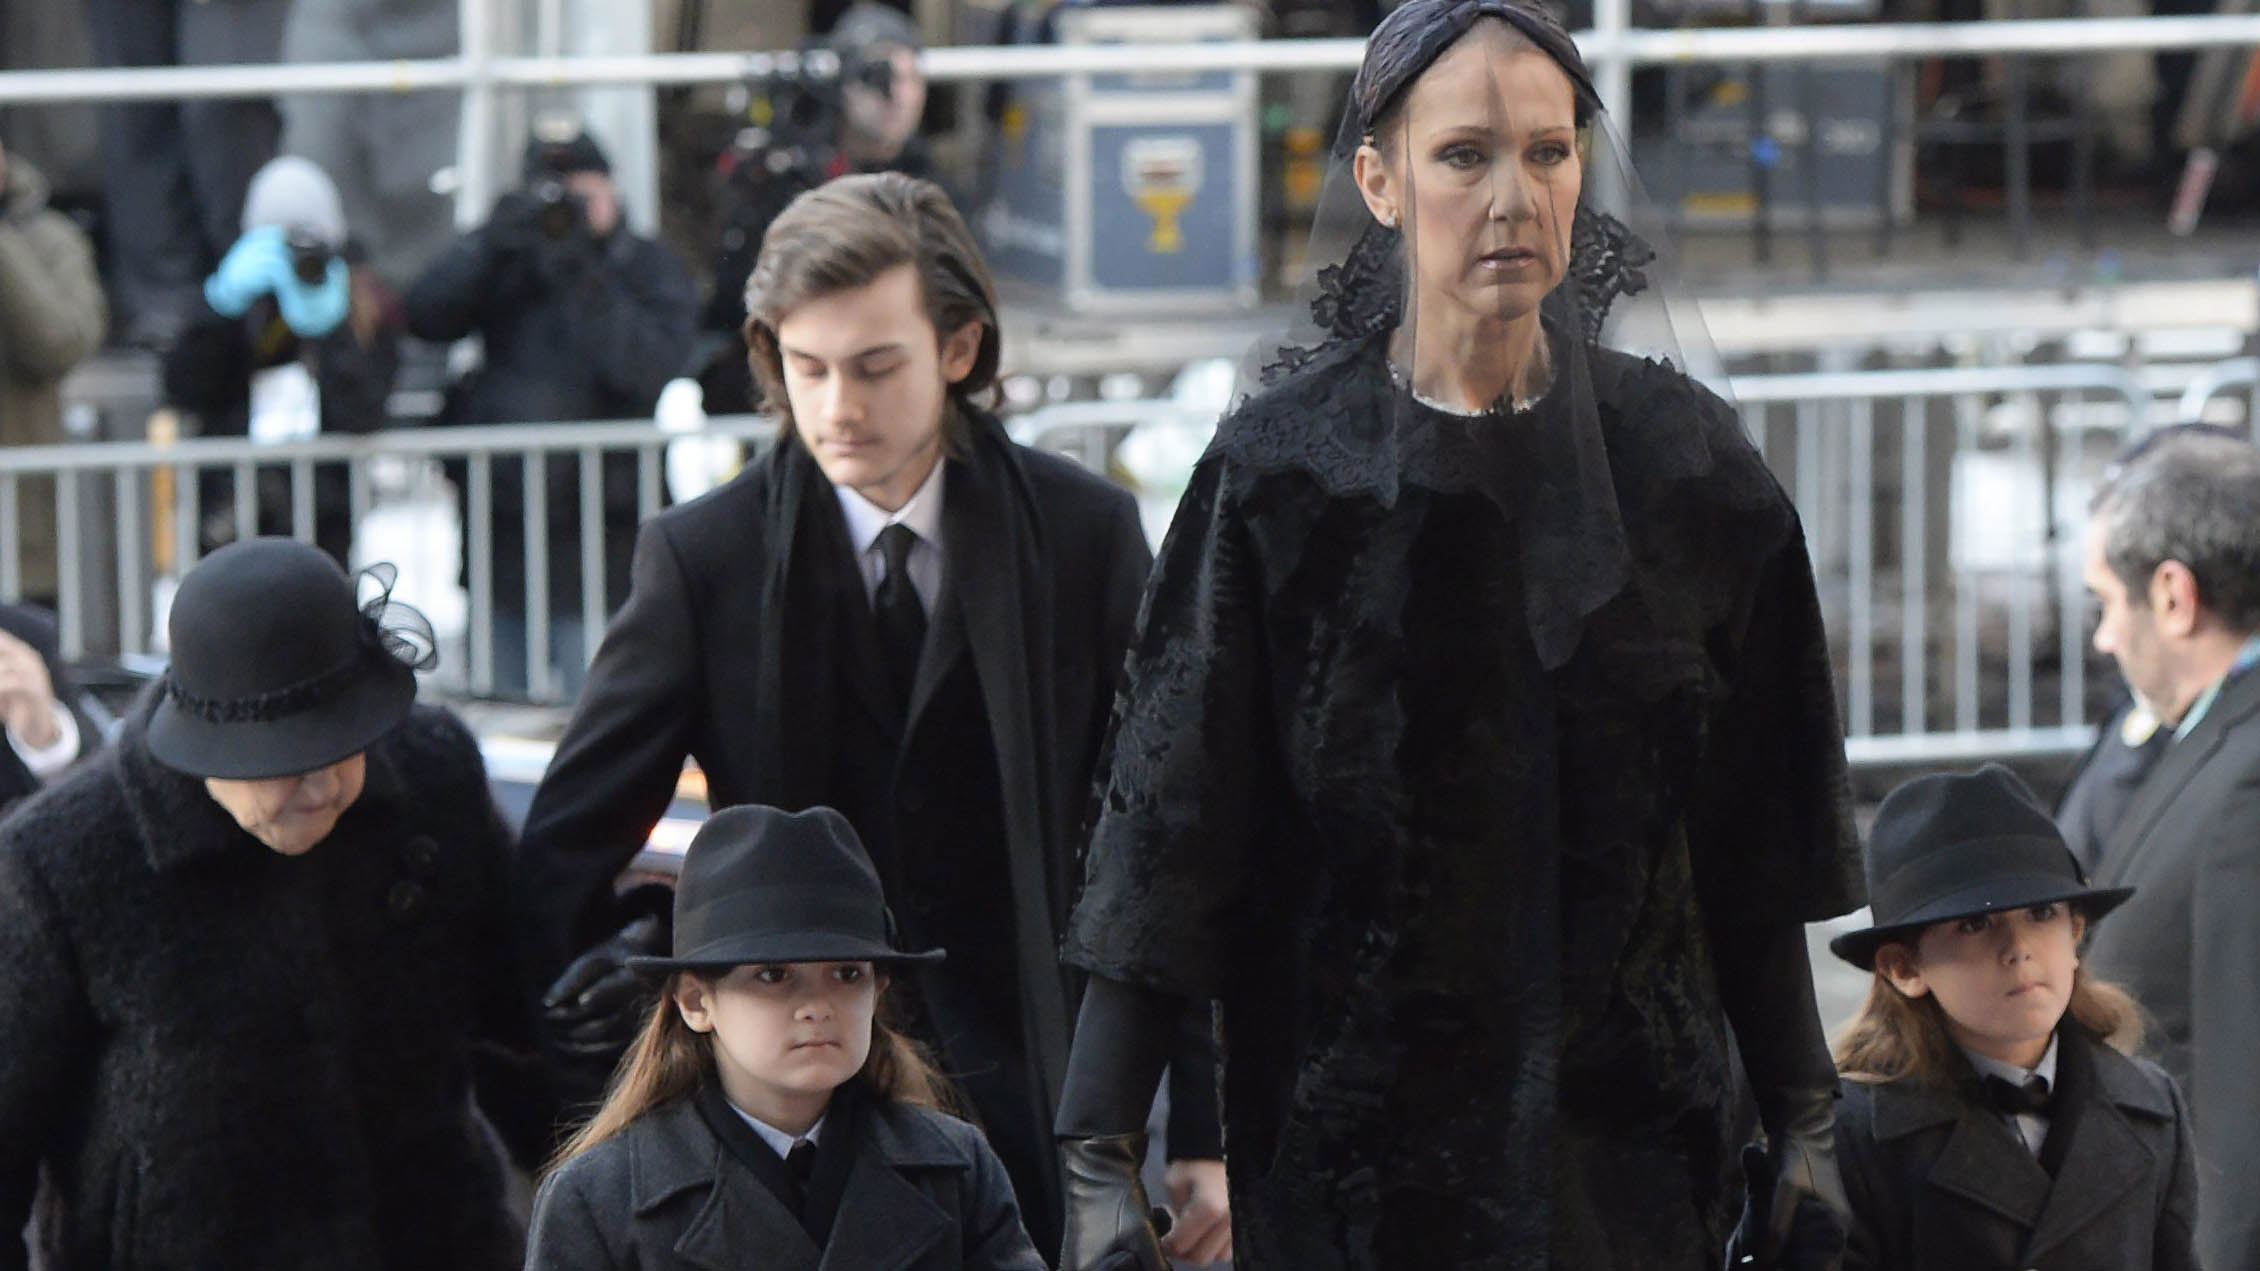 Celine Dion arrives with sons Eddy and Nelson at Montreal's Notre-Dame Basilica on Friday, January 22, 2016 for the funeral of her late husband Rene Angelil, who died of throat cancer last week at the age of 73. THE CANADIAN PRESS/Ryan Remiorz